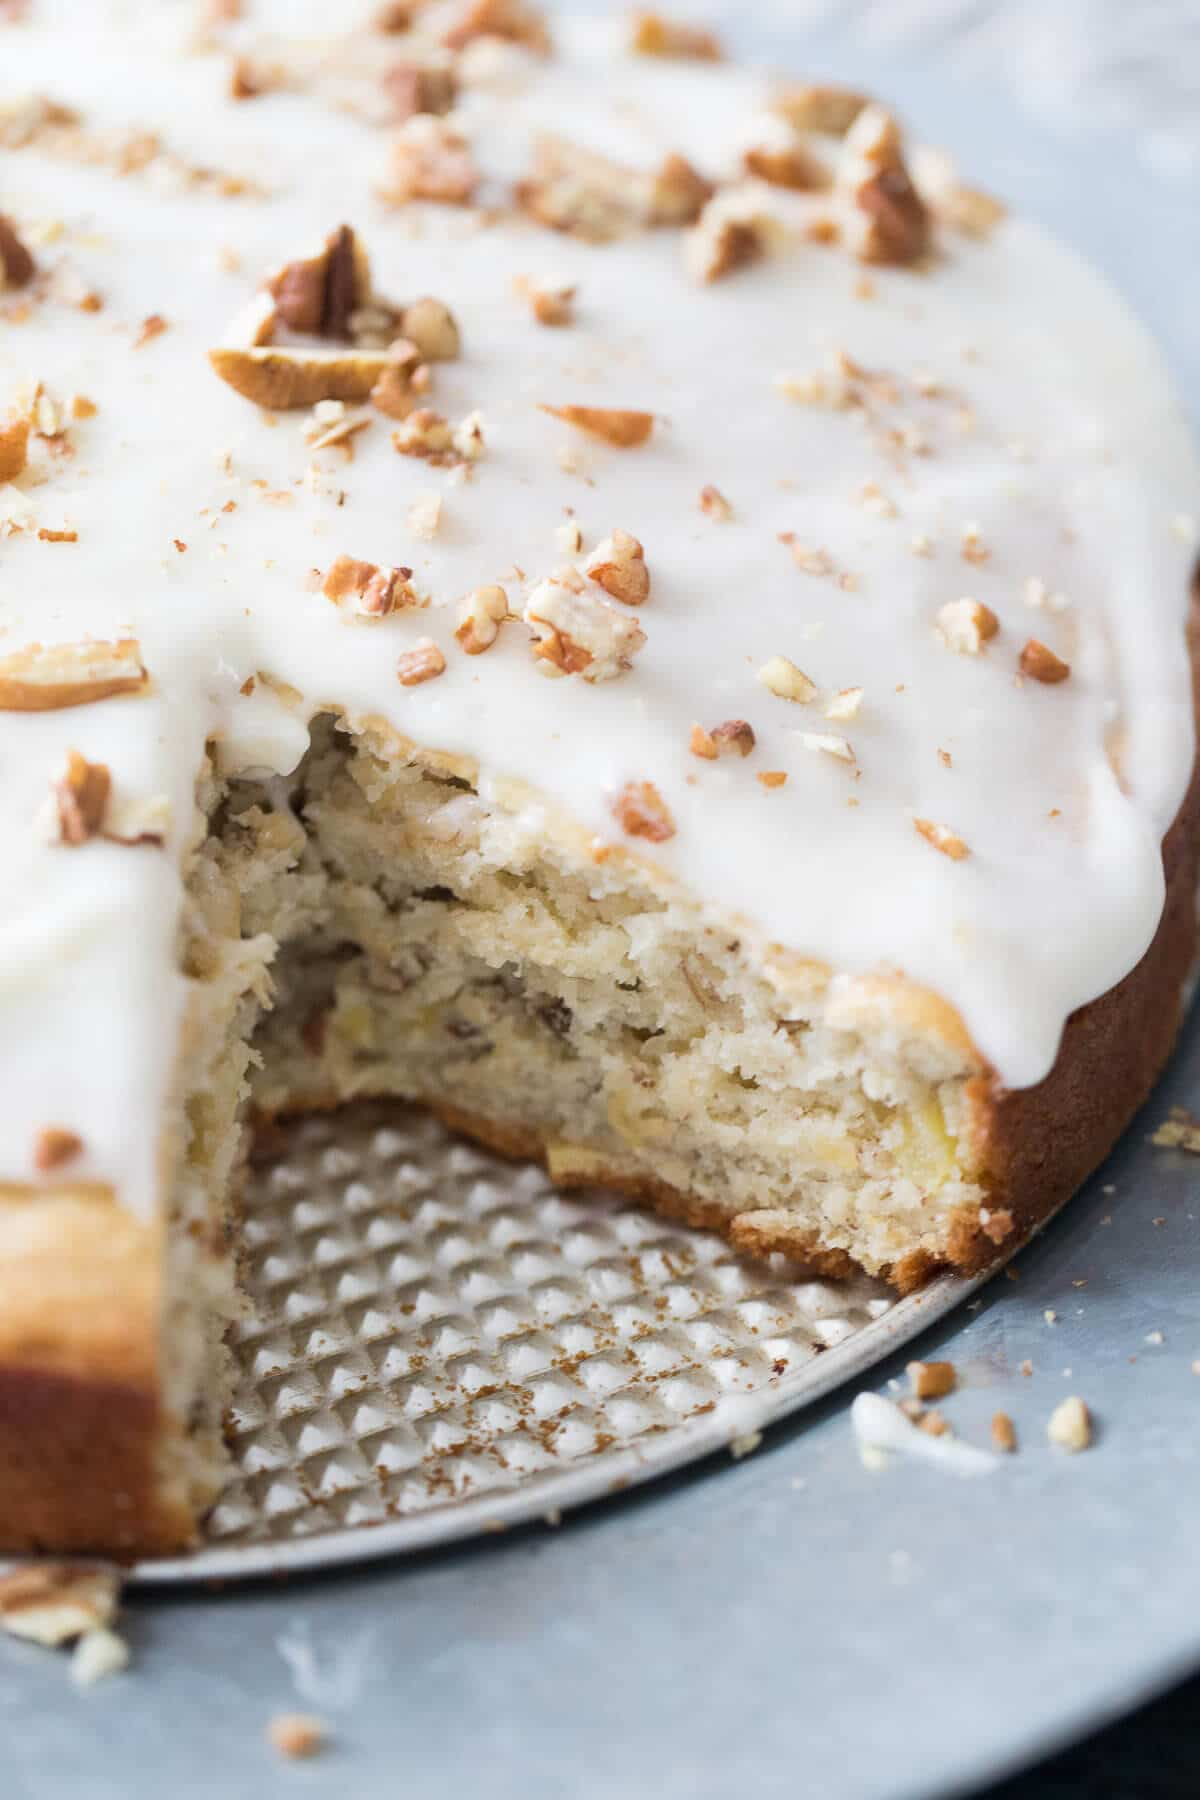 This hummingbird cake recipe is simple to prepare, it's tender and sweet and makes the best coffee cake.